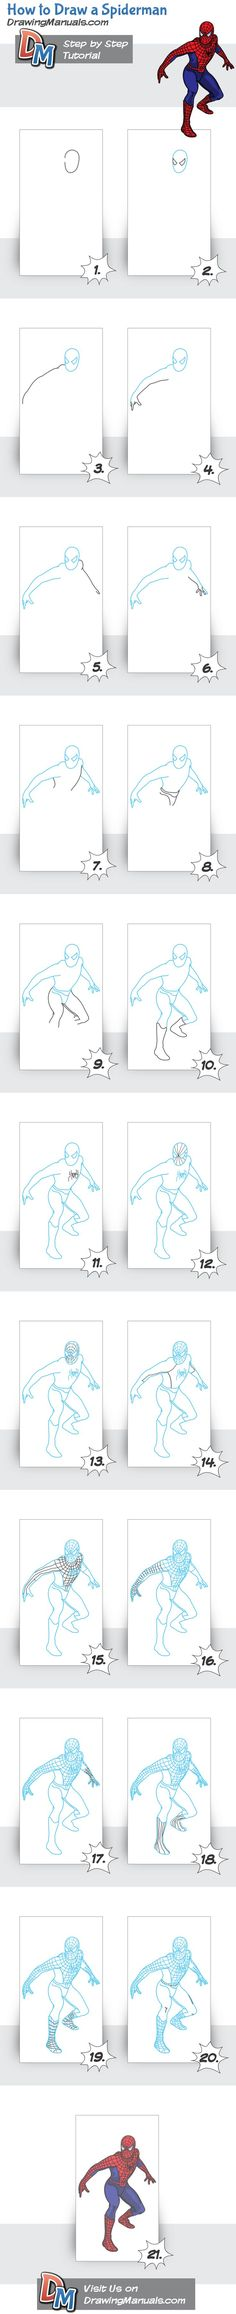 How to Draw Spiderman - Visit to grab an amazing super hero shirt now on sale! Spiderman Drawing, Drawing Superheroes, Disney Drawings, Cartoon Drawings, Art Drawings, Drawing For Kids, Drawing Tips, Drawing Ideas, Ap Studio Art